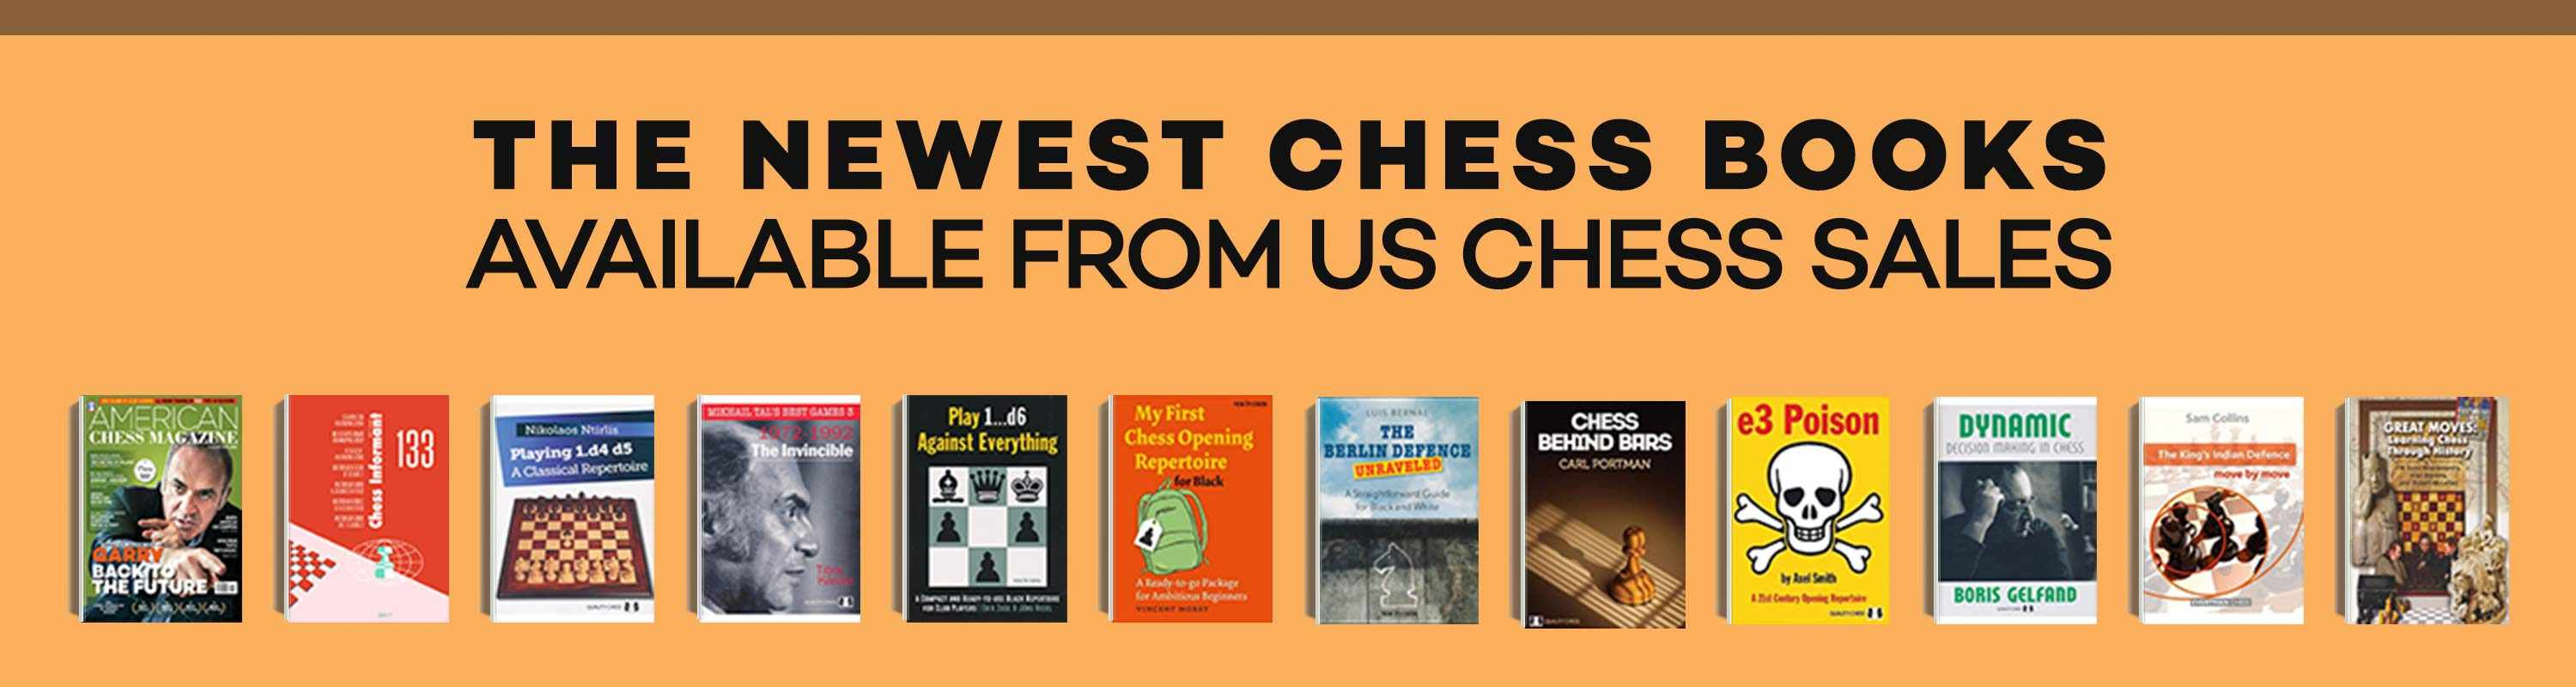 The Newest Chess Books Available from US Chess Sales